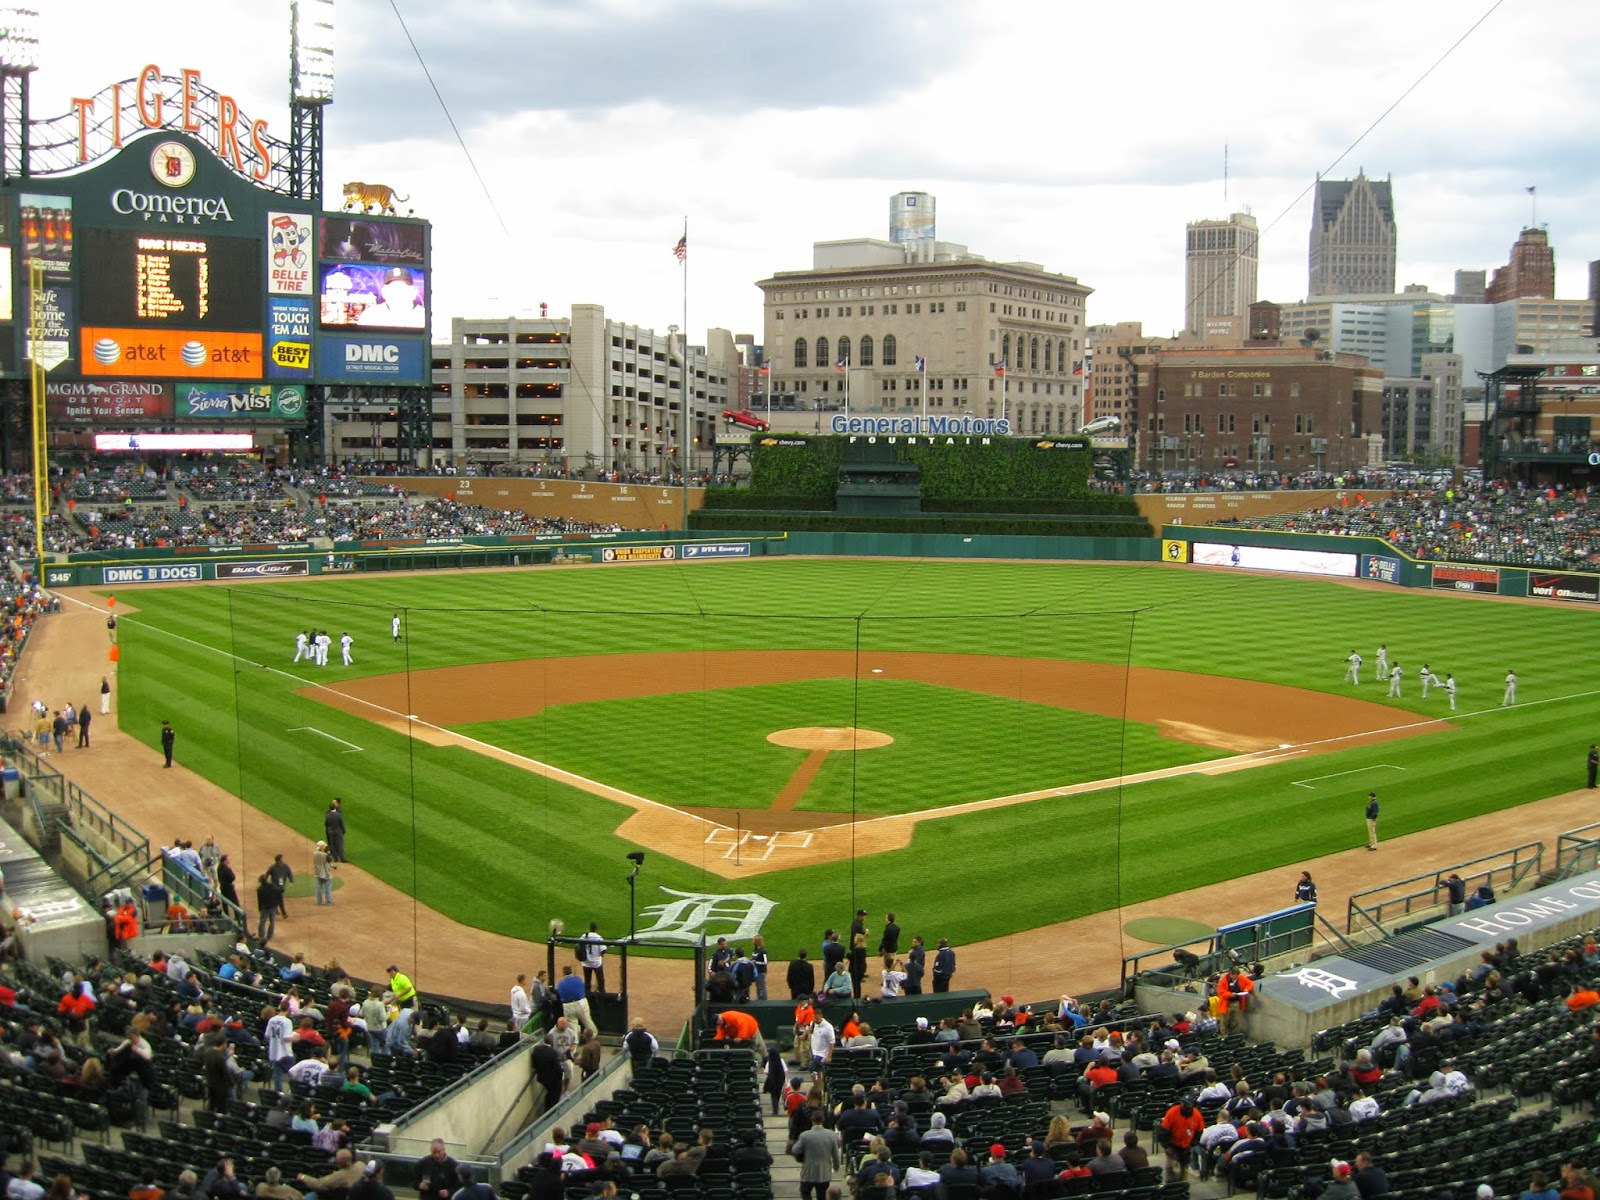 Comerica Park Luxury Suites For Sale, Detroit Tigers, 2014